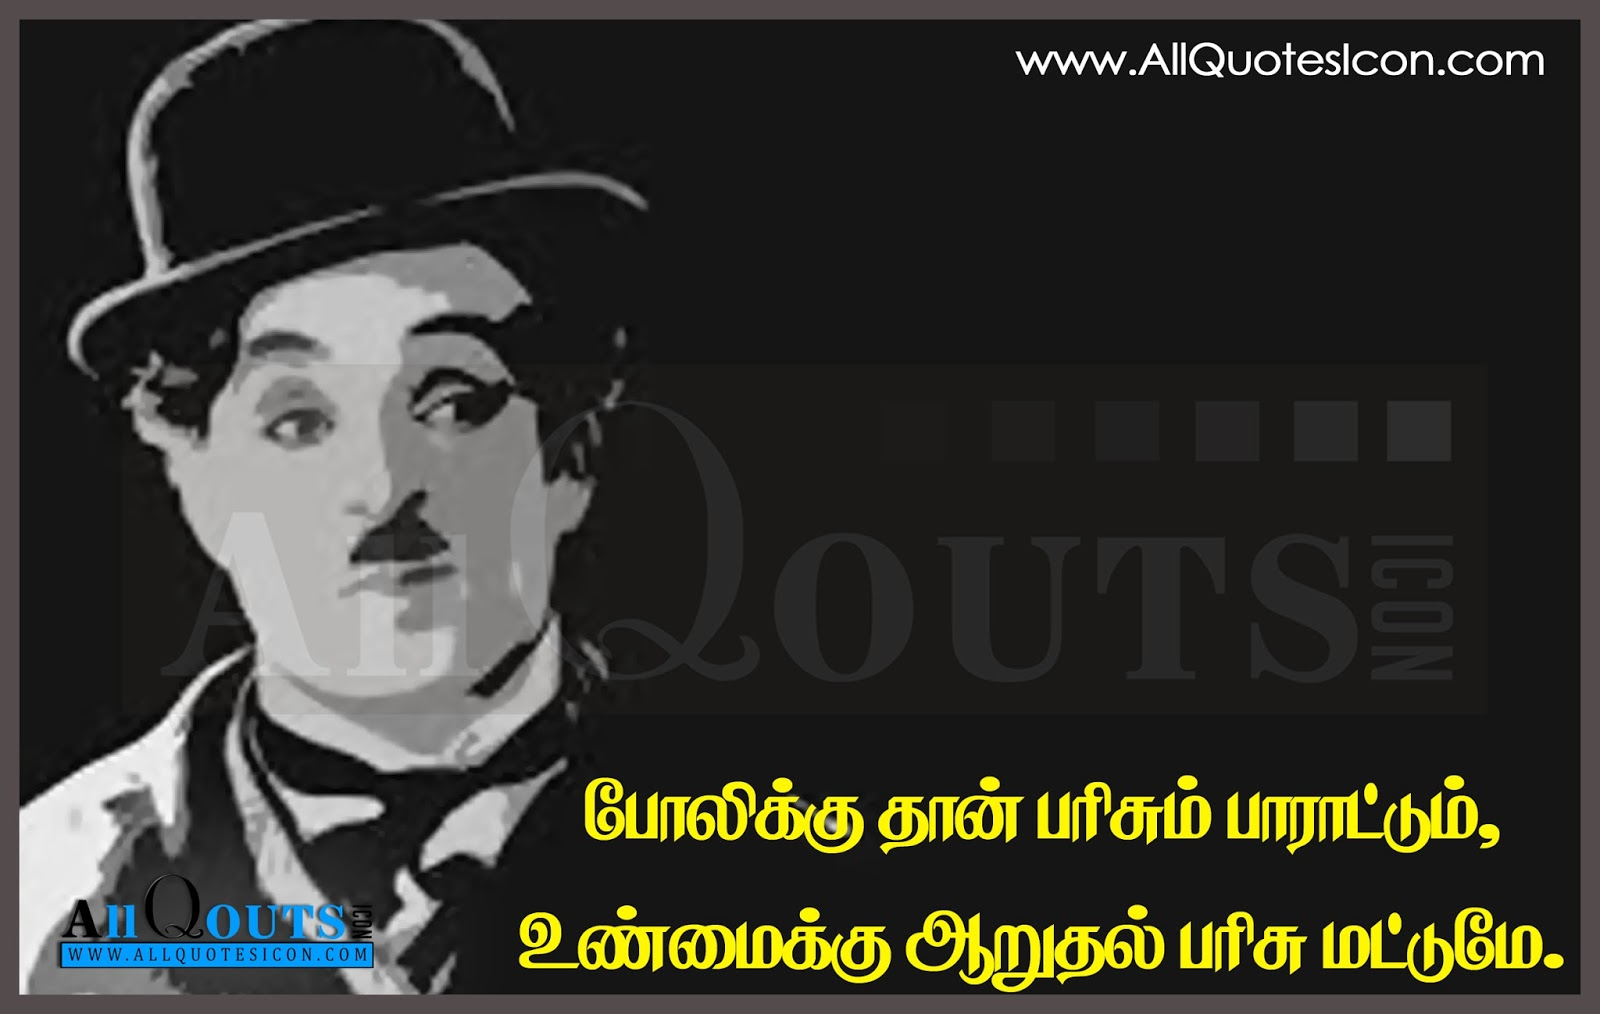 famous charlie chaplin quotations in tamil pictures best